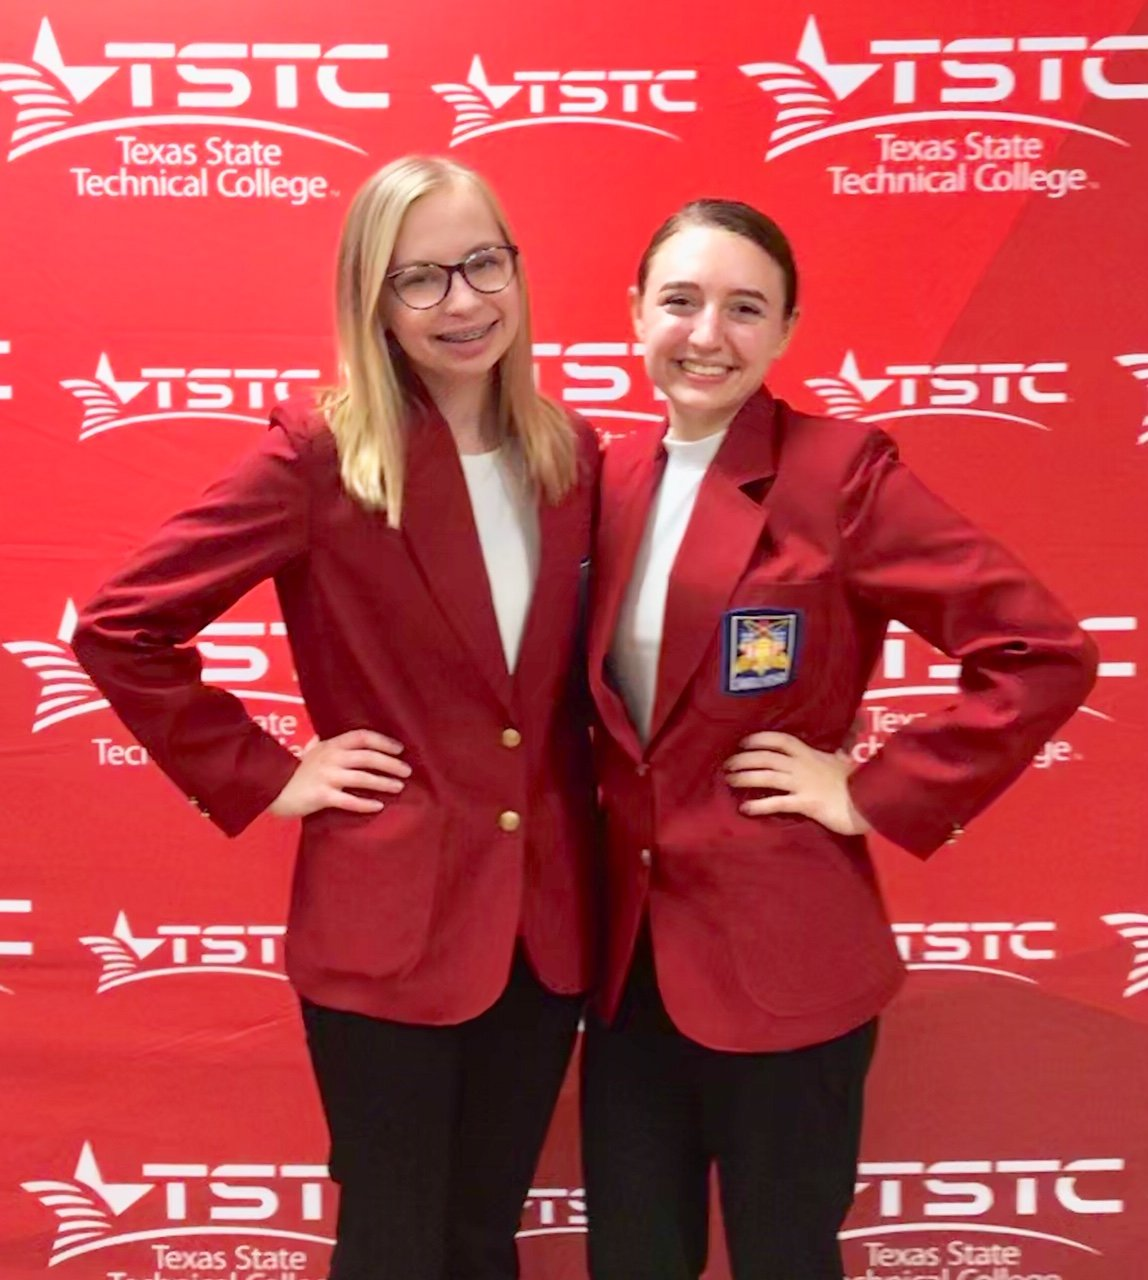 Faith Murphy and Emma Phillips were selected from a group of 25 applicants to serve as SkillsUSA District officers.